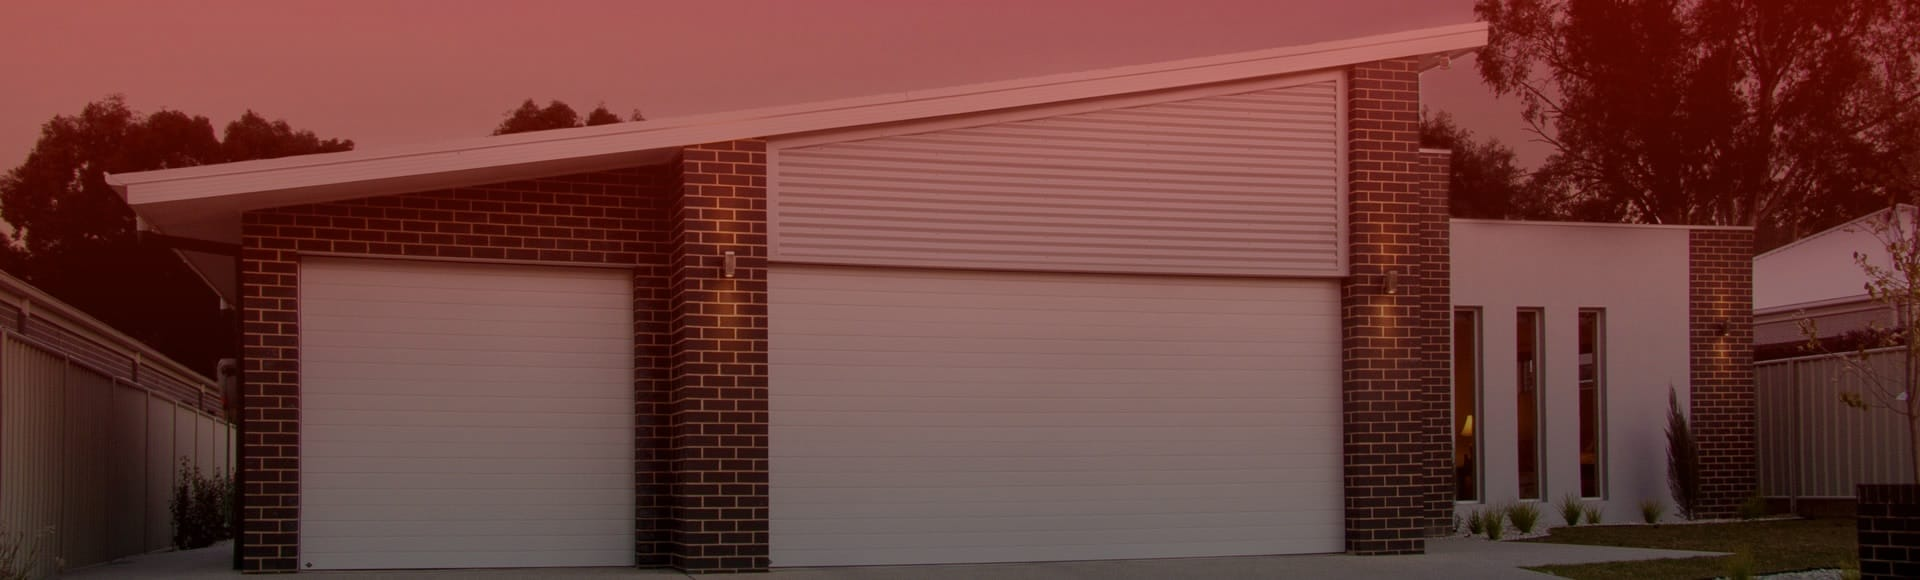 Easy Garage Door Installation